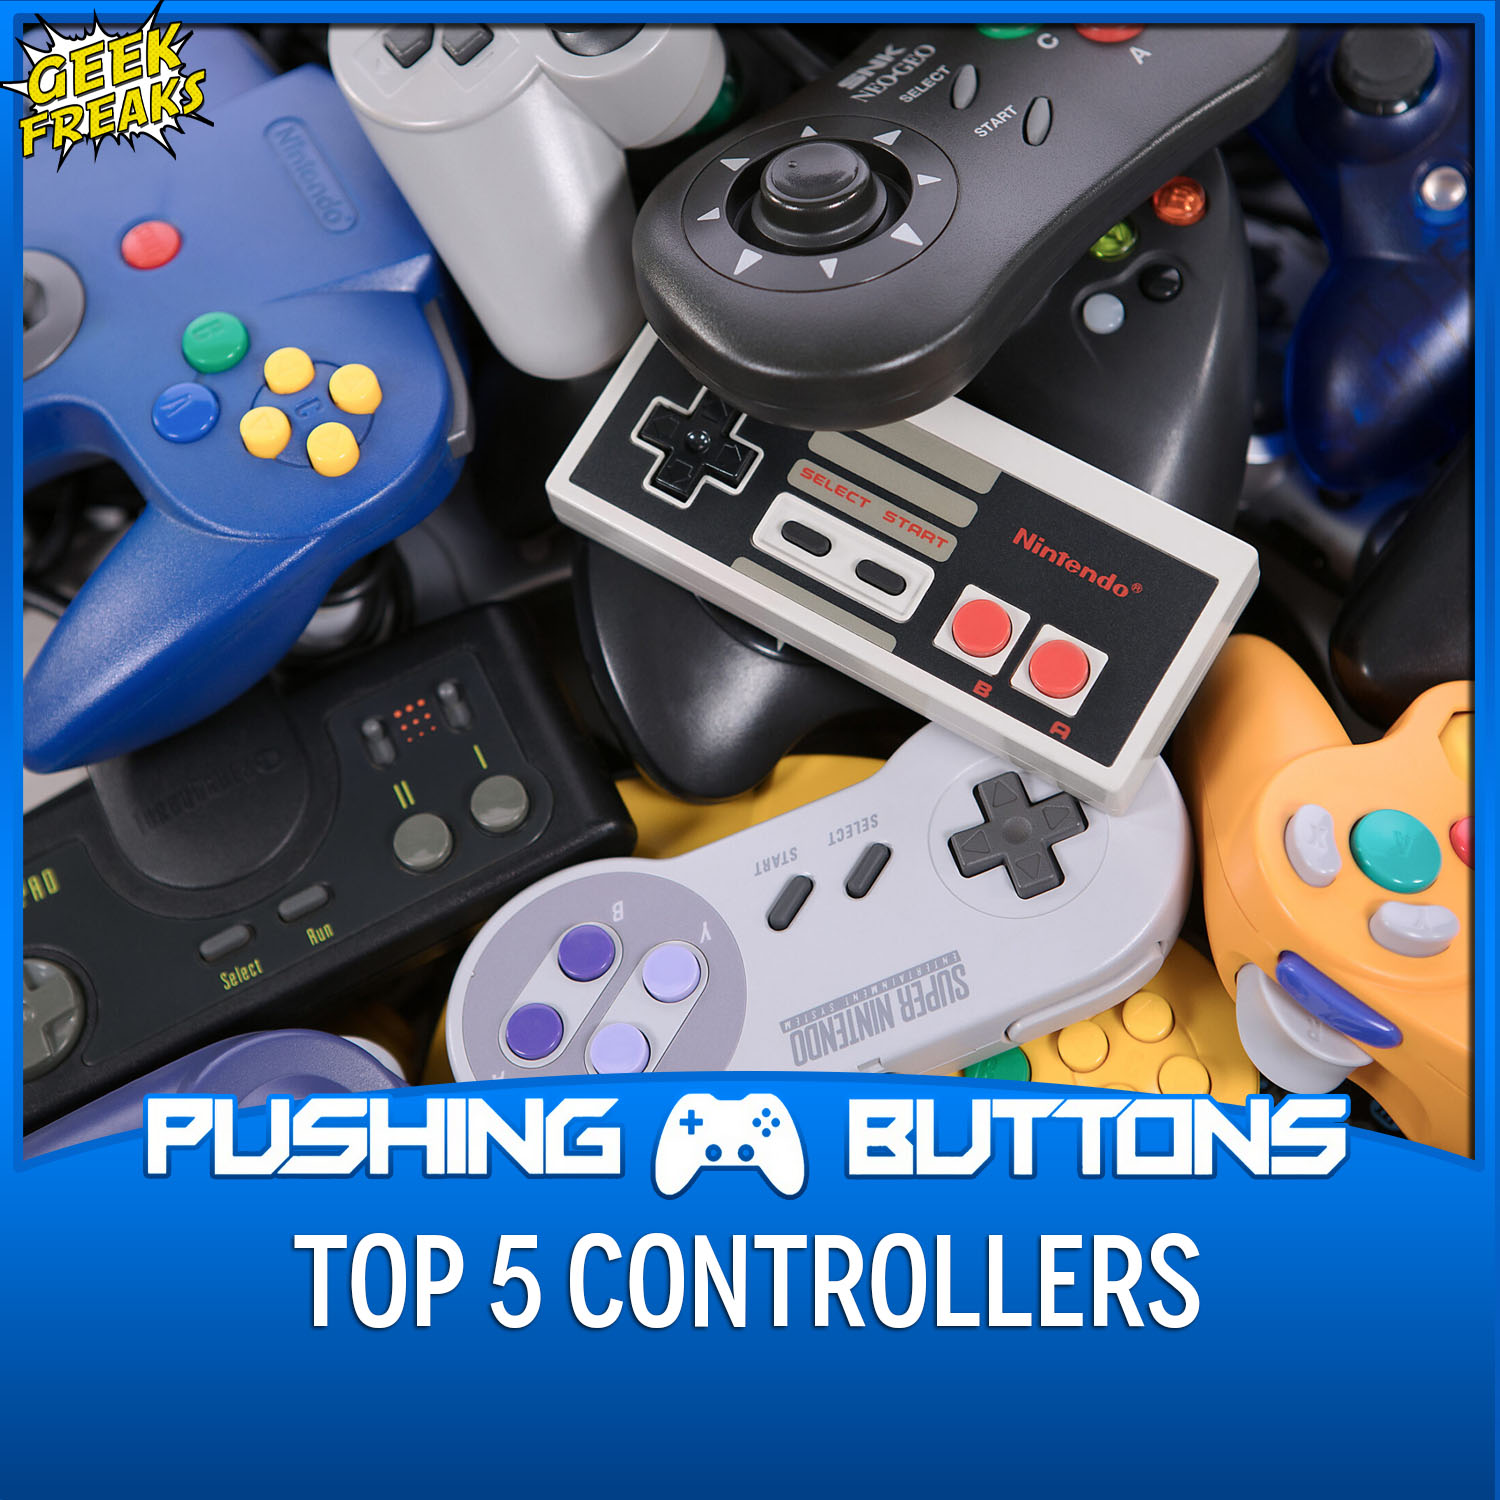 Top 5 Controllers and Upcoming Games - Pushing Buttons show art